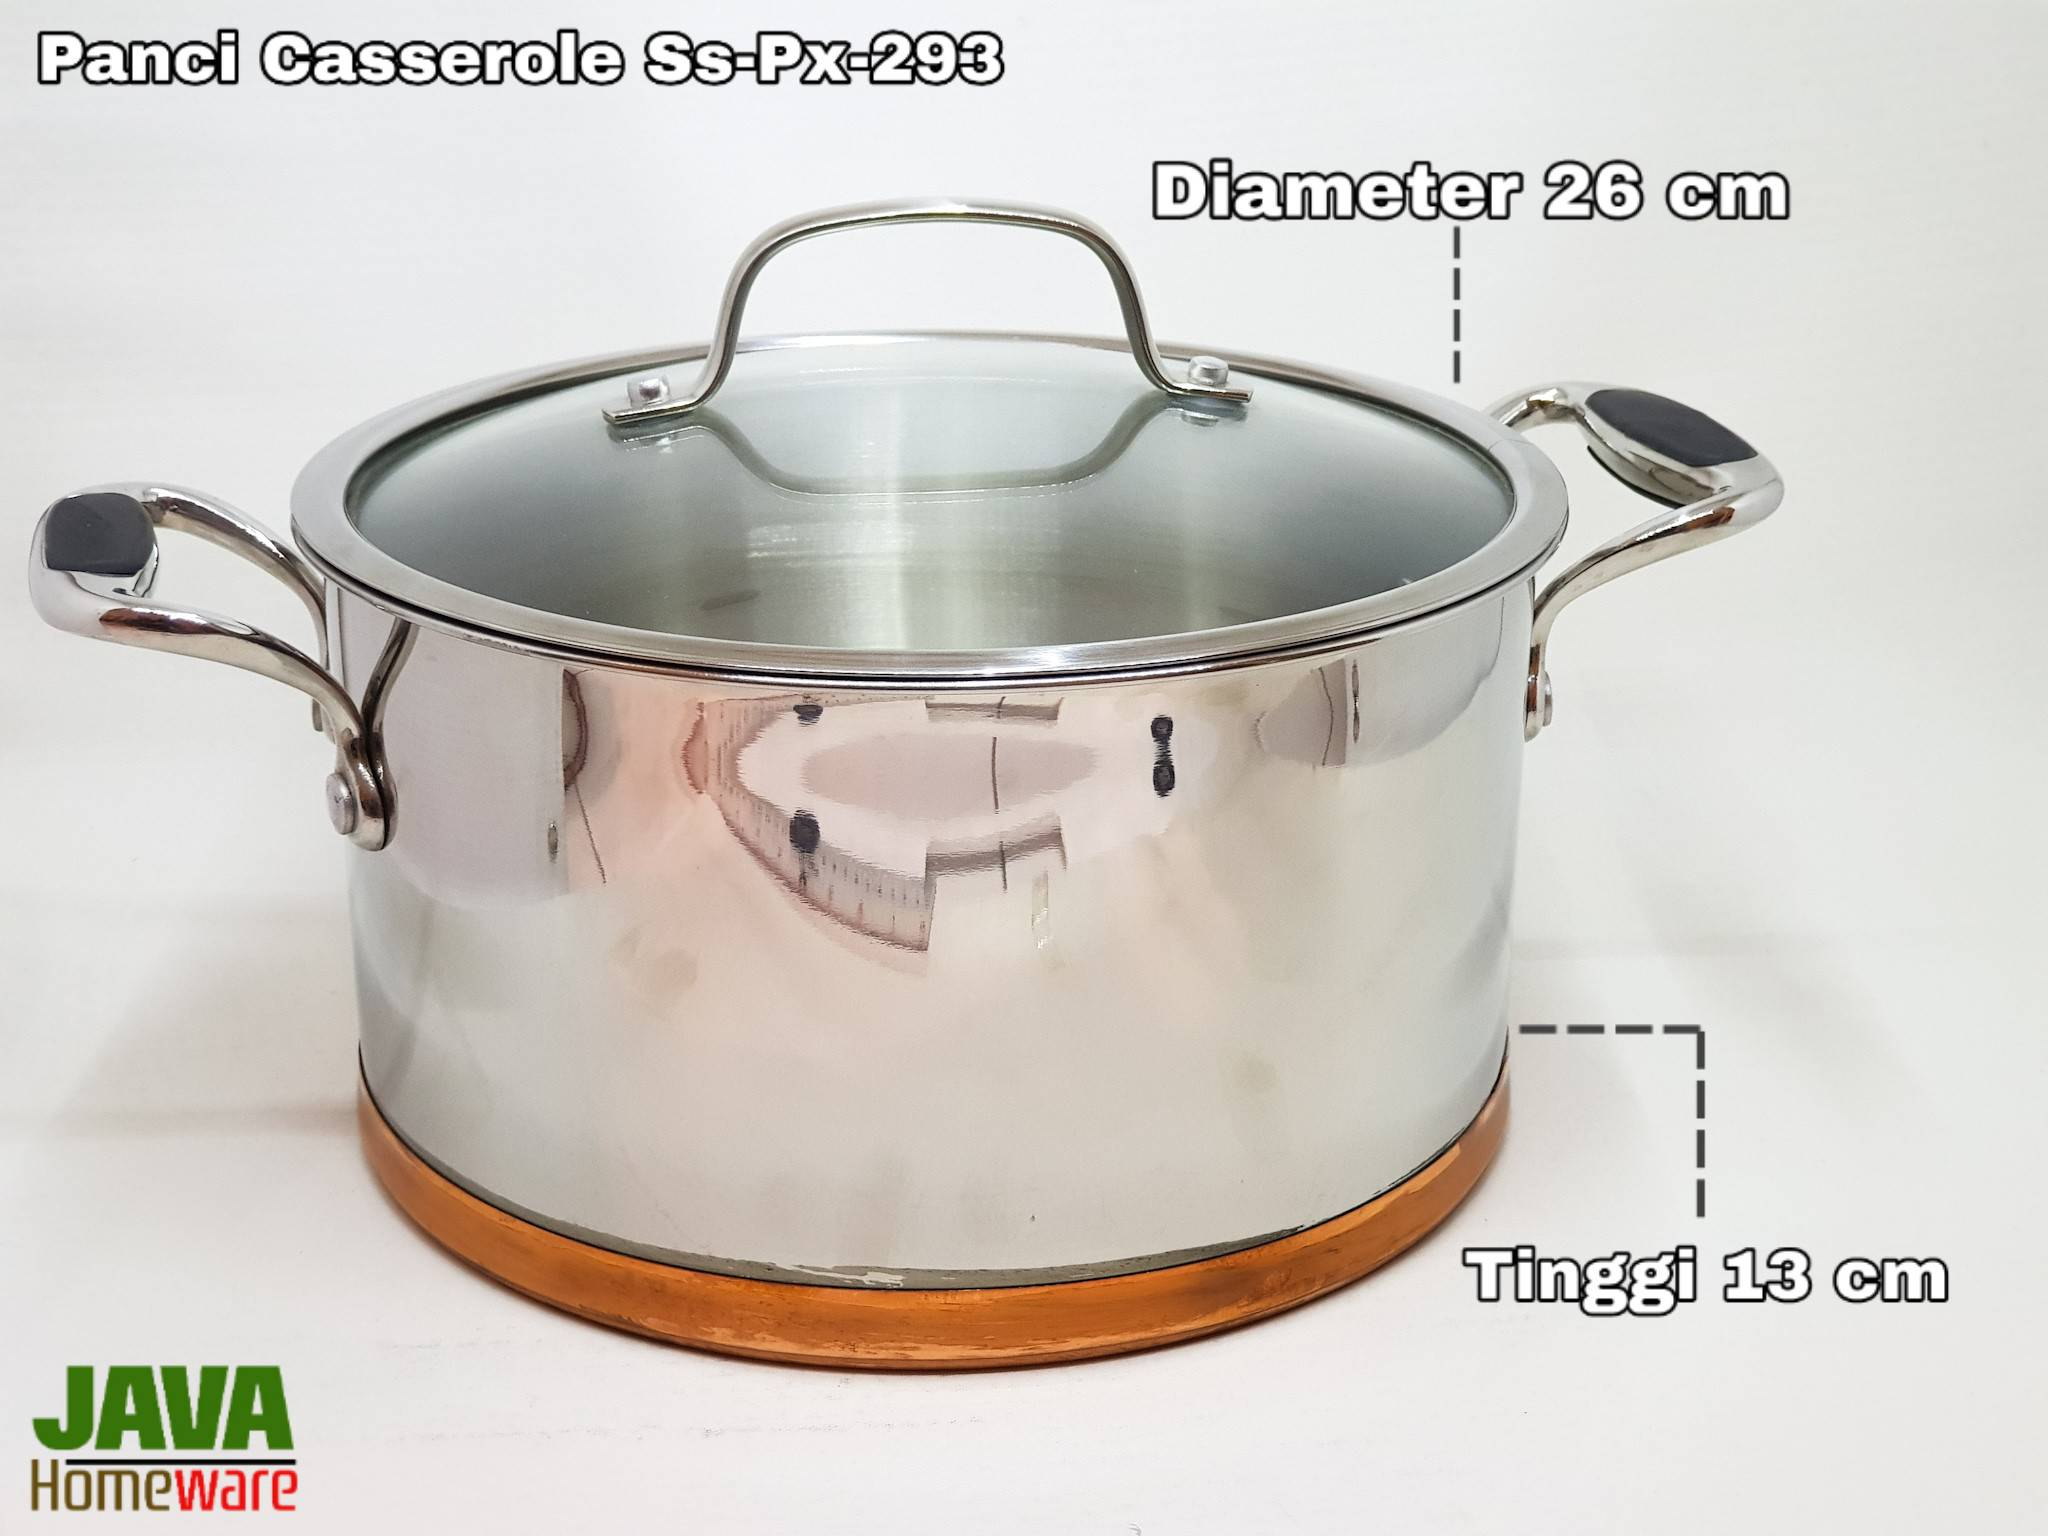 Panci stainless steel casserole SS - PX - 293